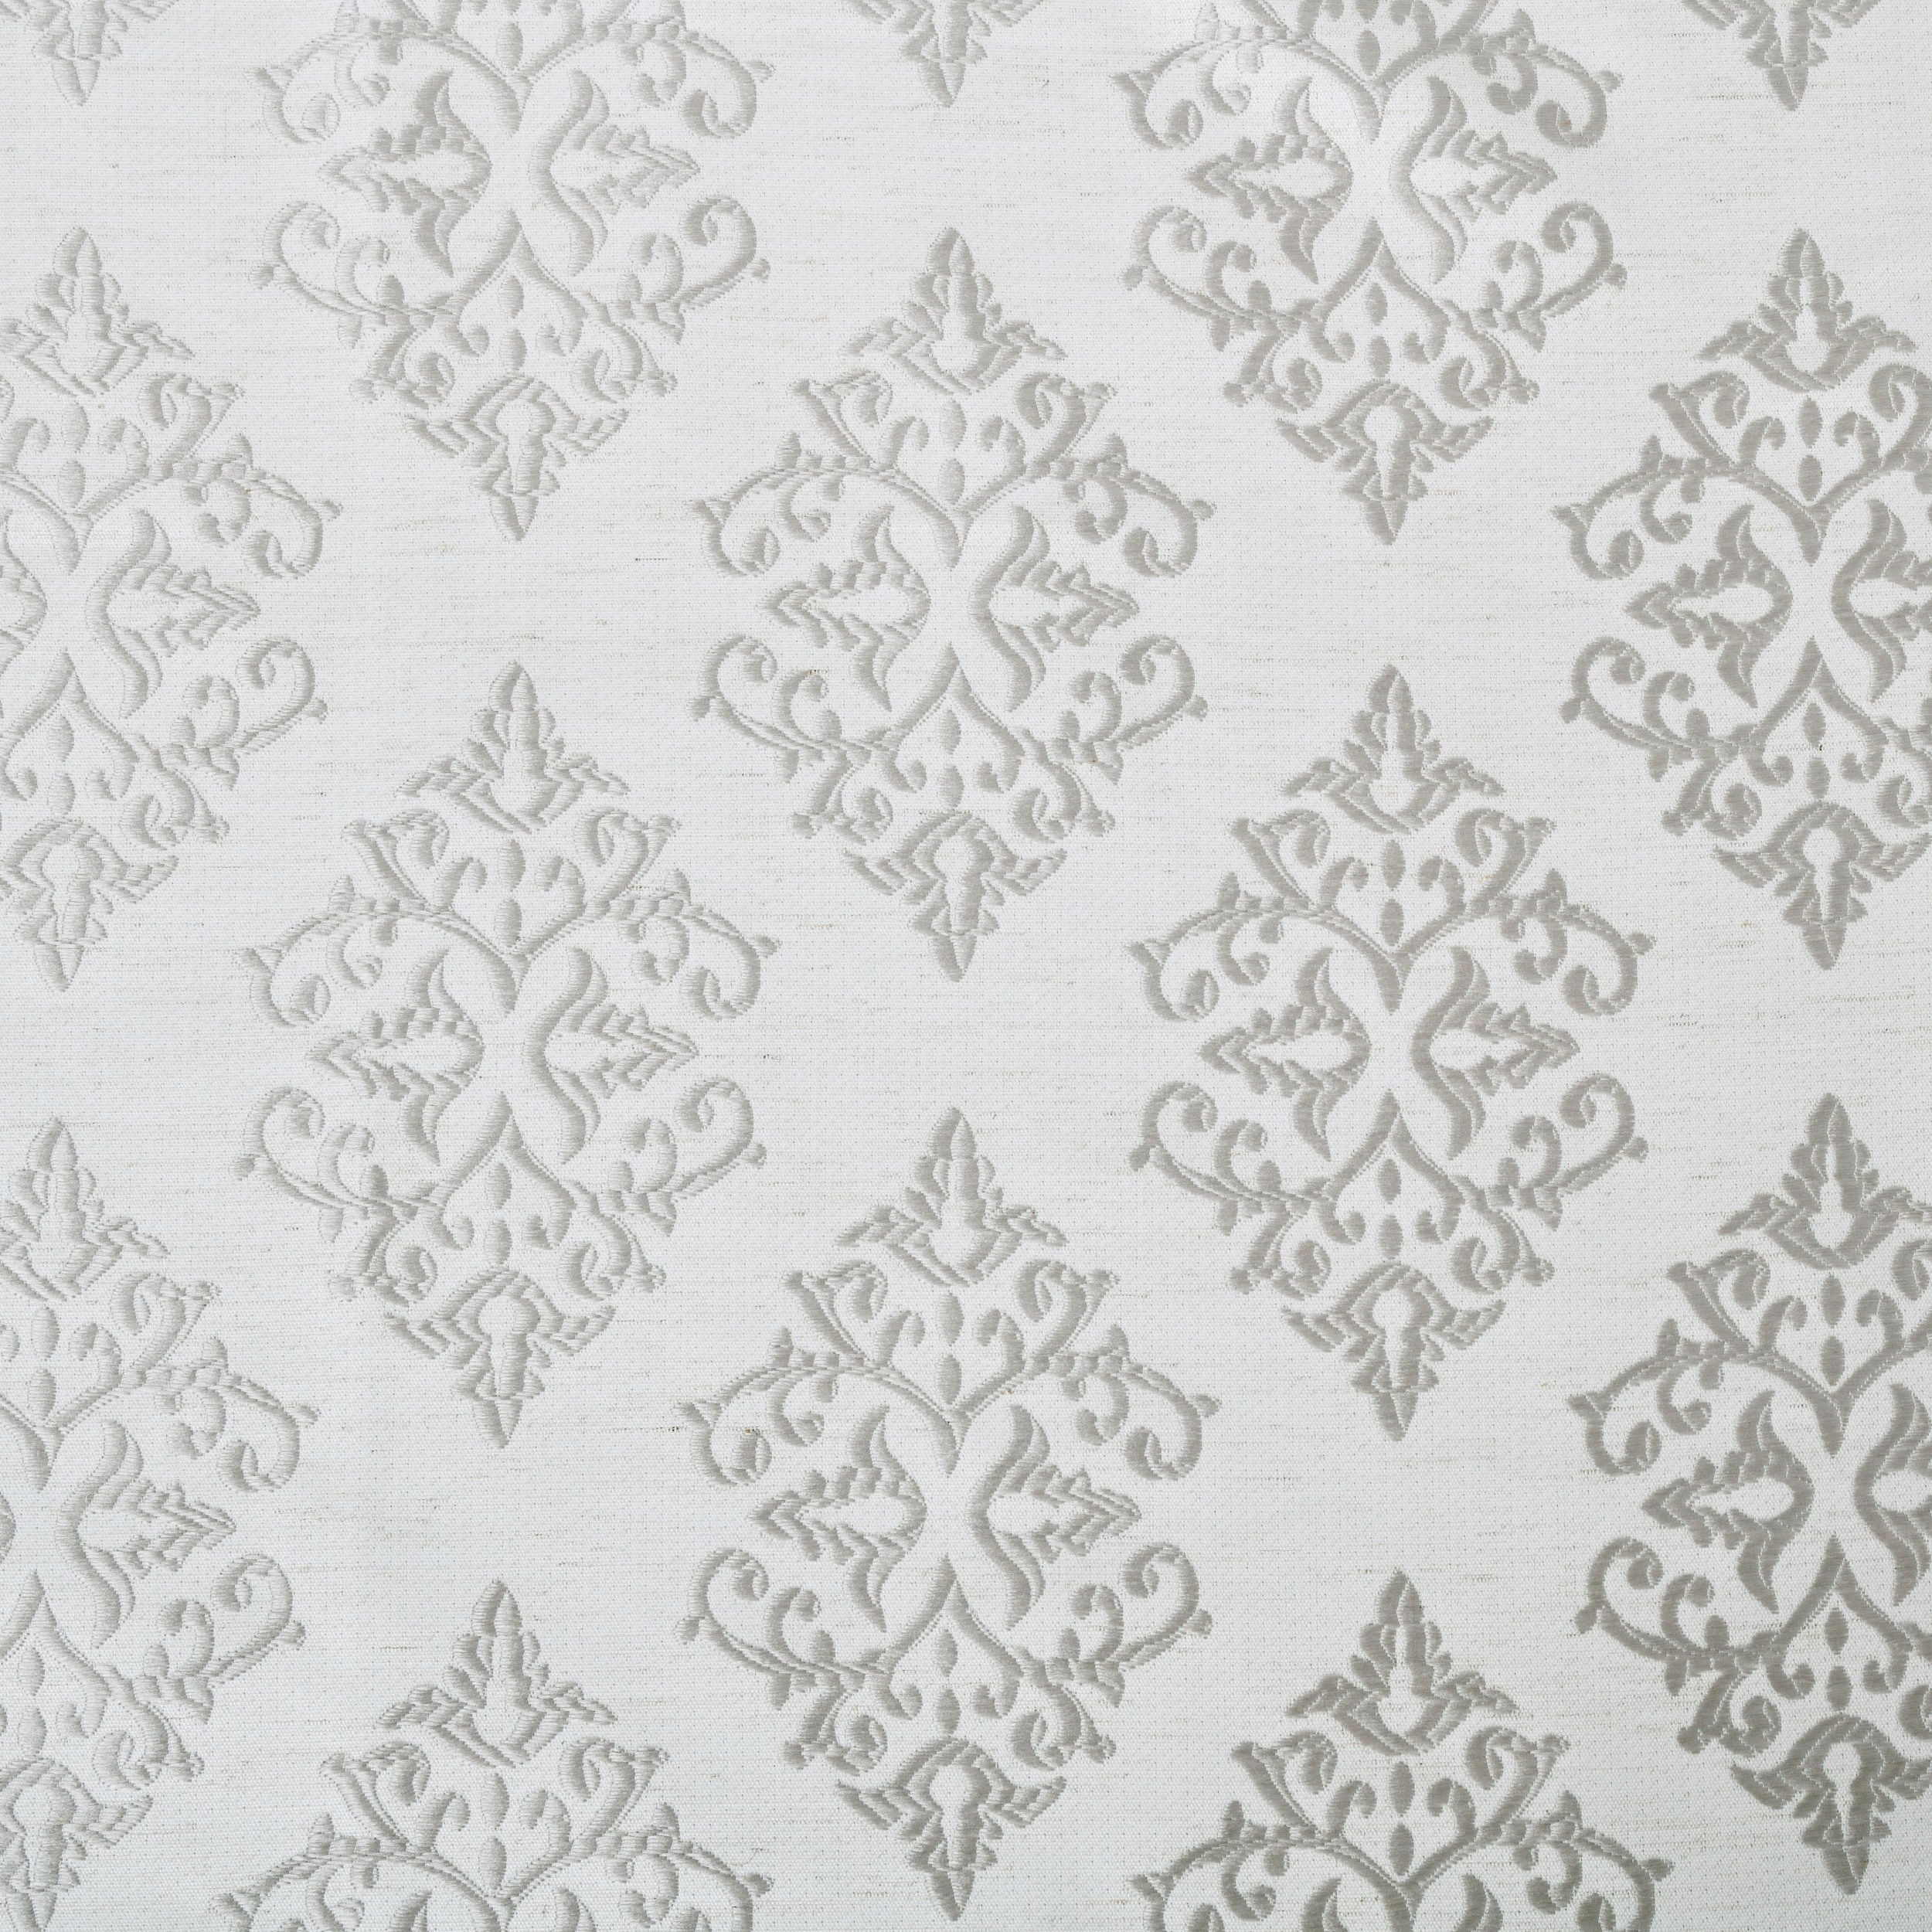 Miranda Haus Labrea Damask Jacquard Grommet Curtain Panels Throughout Most Recently Released Miranda Haus Labrea Damask Jacquard Grommet Curtain Panel (set Of 2) (View 7 of 20)